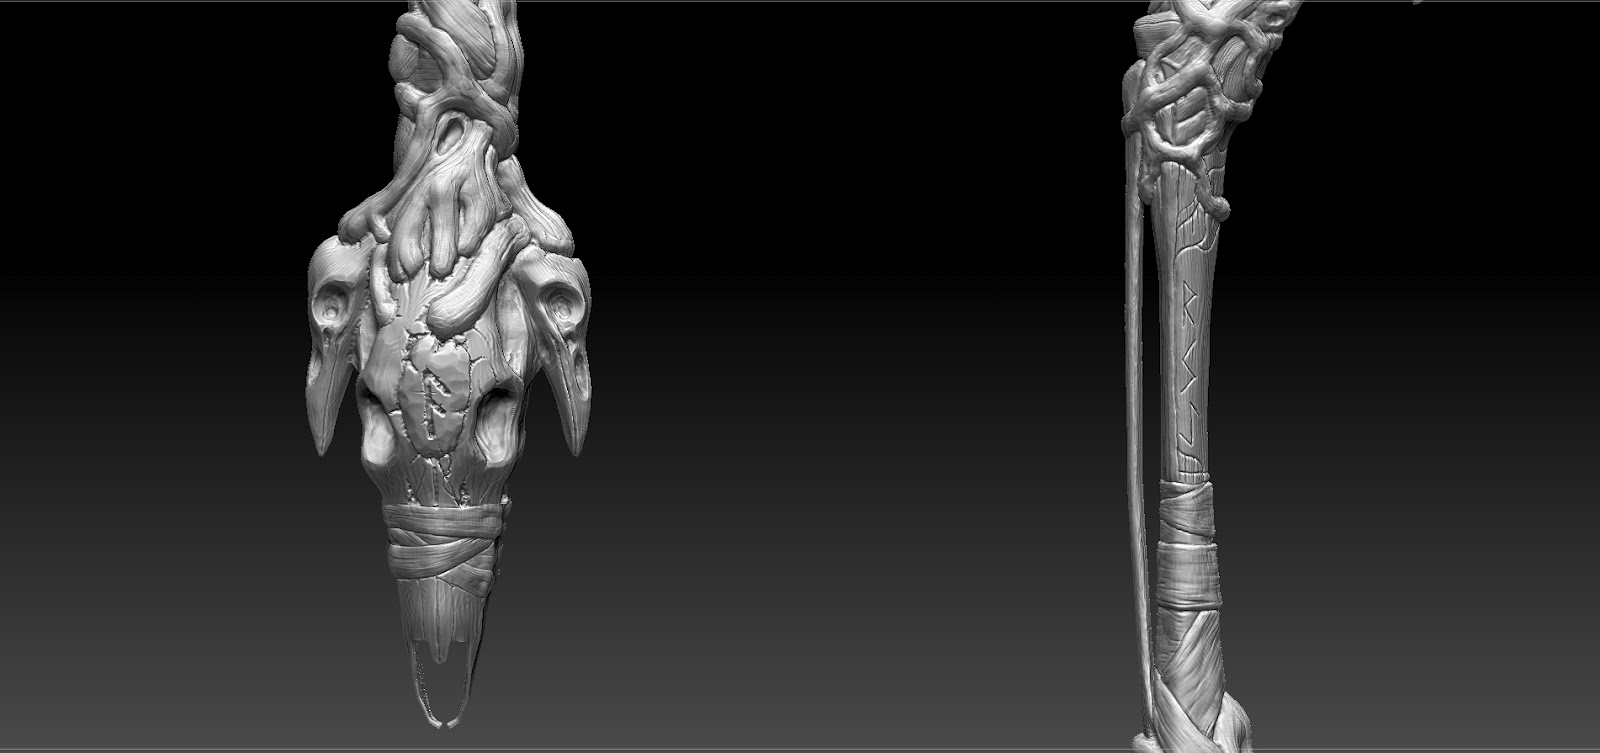 weapon_sculpt2.jpg